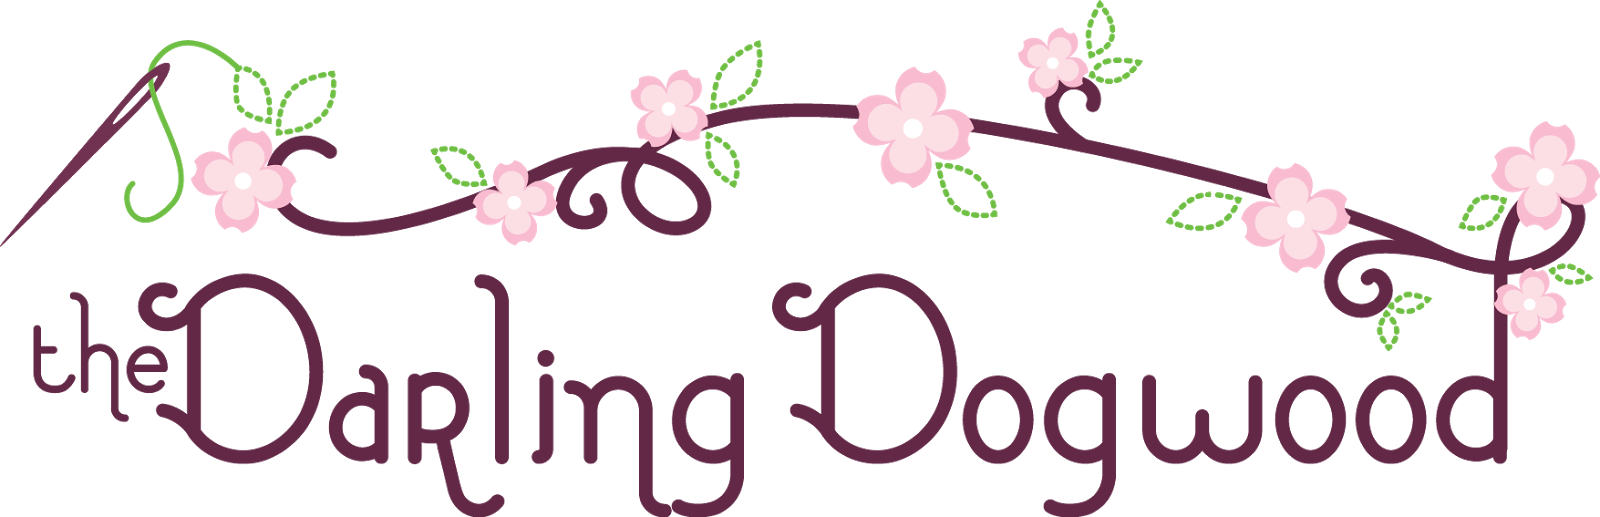 The Darling Dogwood